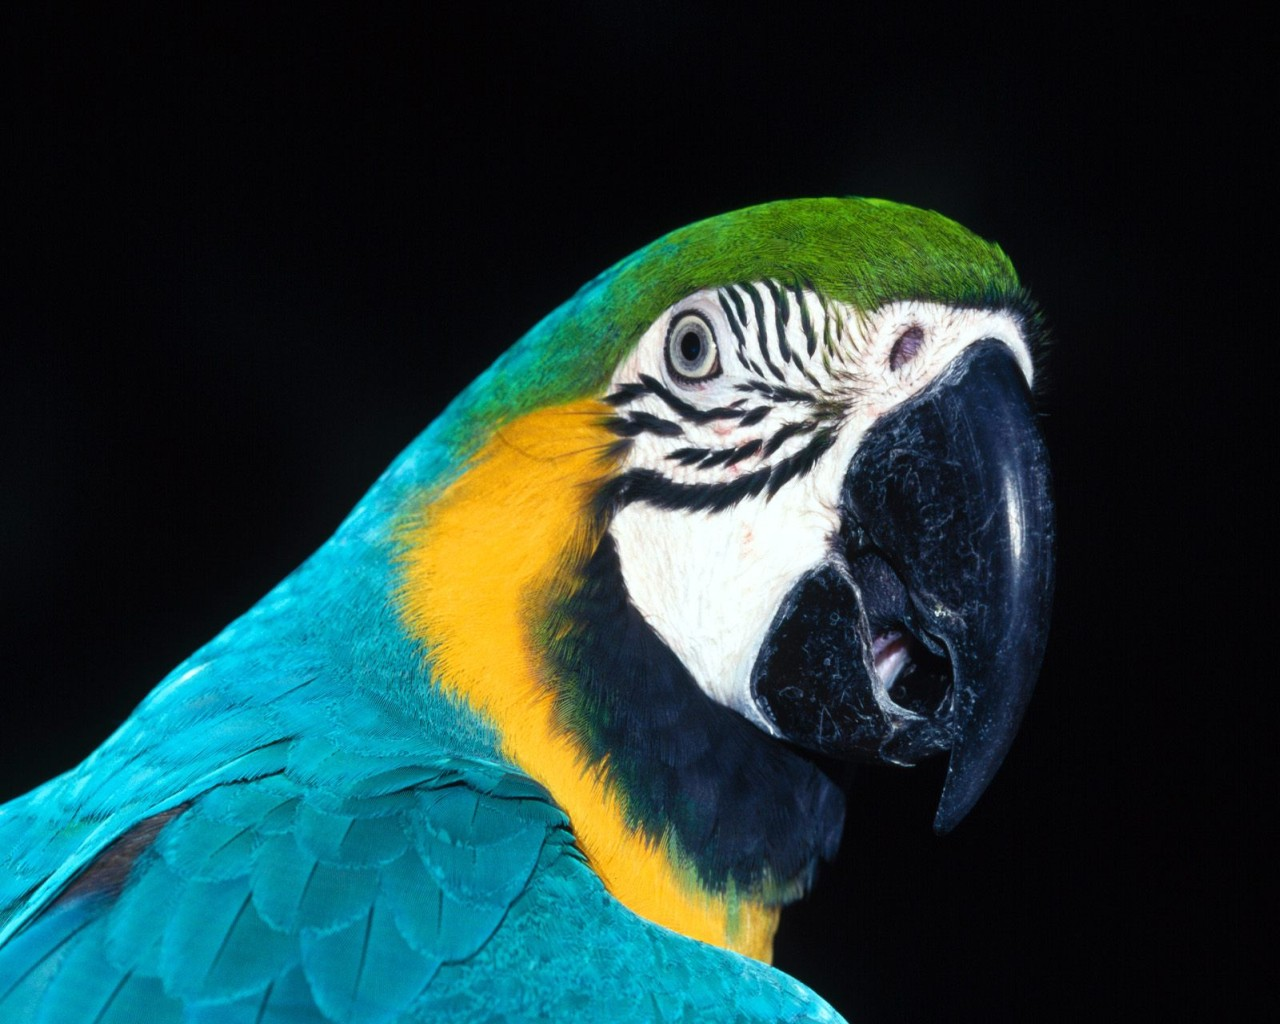 wallpaper you are viewing the birds wallpaper named parrot head it has ...